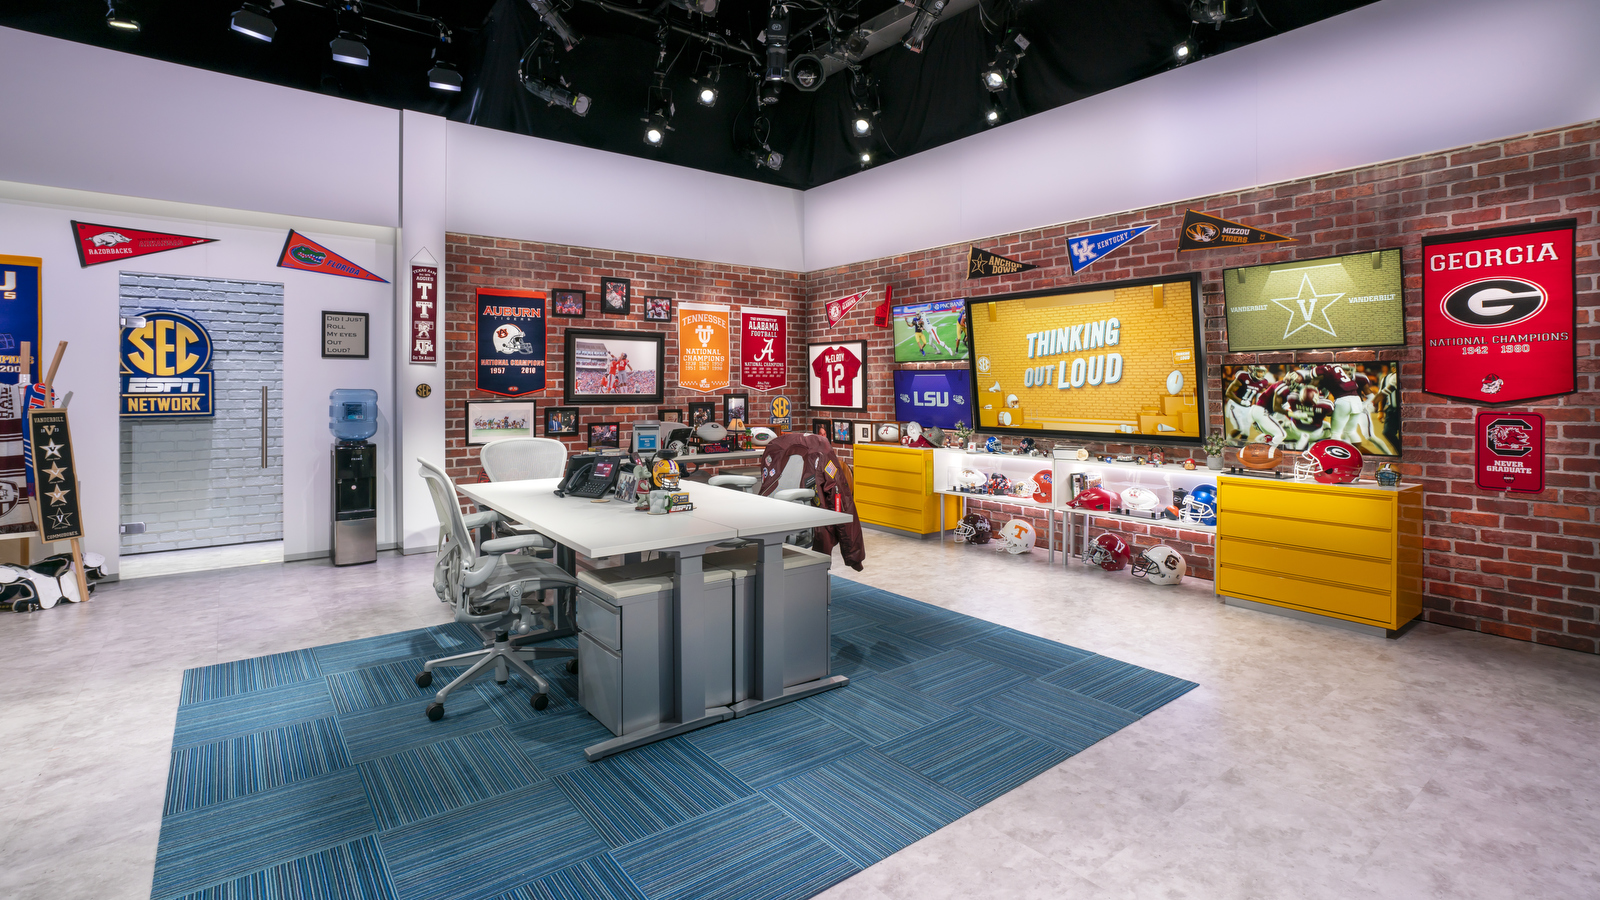 NCS_SEC-Network_Studio_2019_037